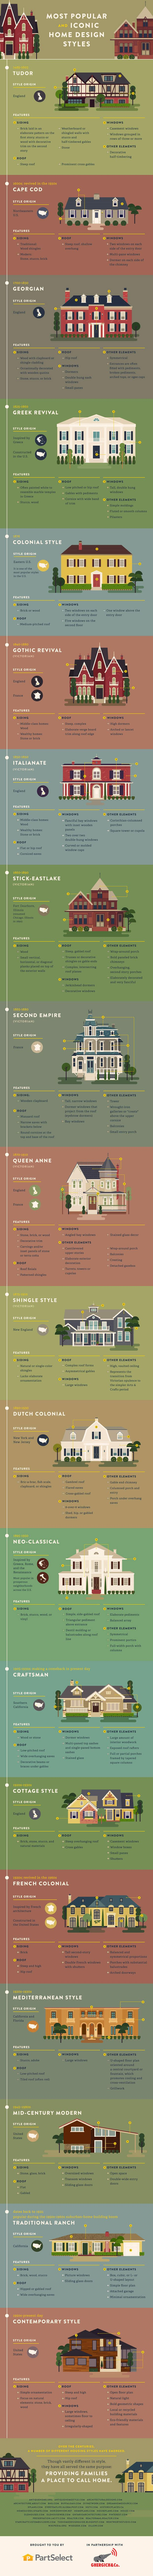 Infographic How To Identify The Different Styles Home Architecture